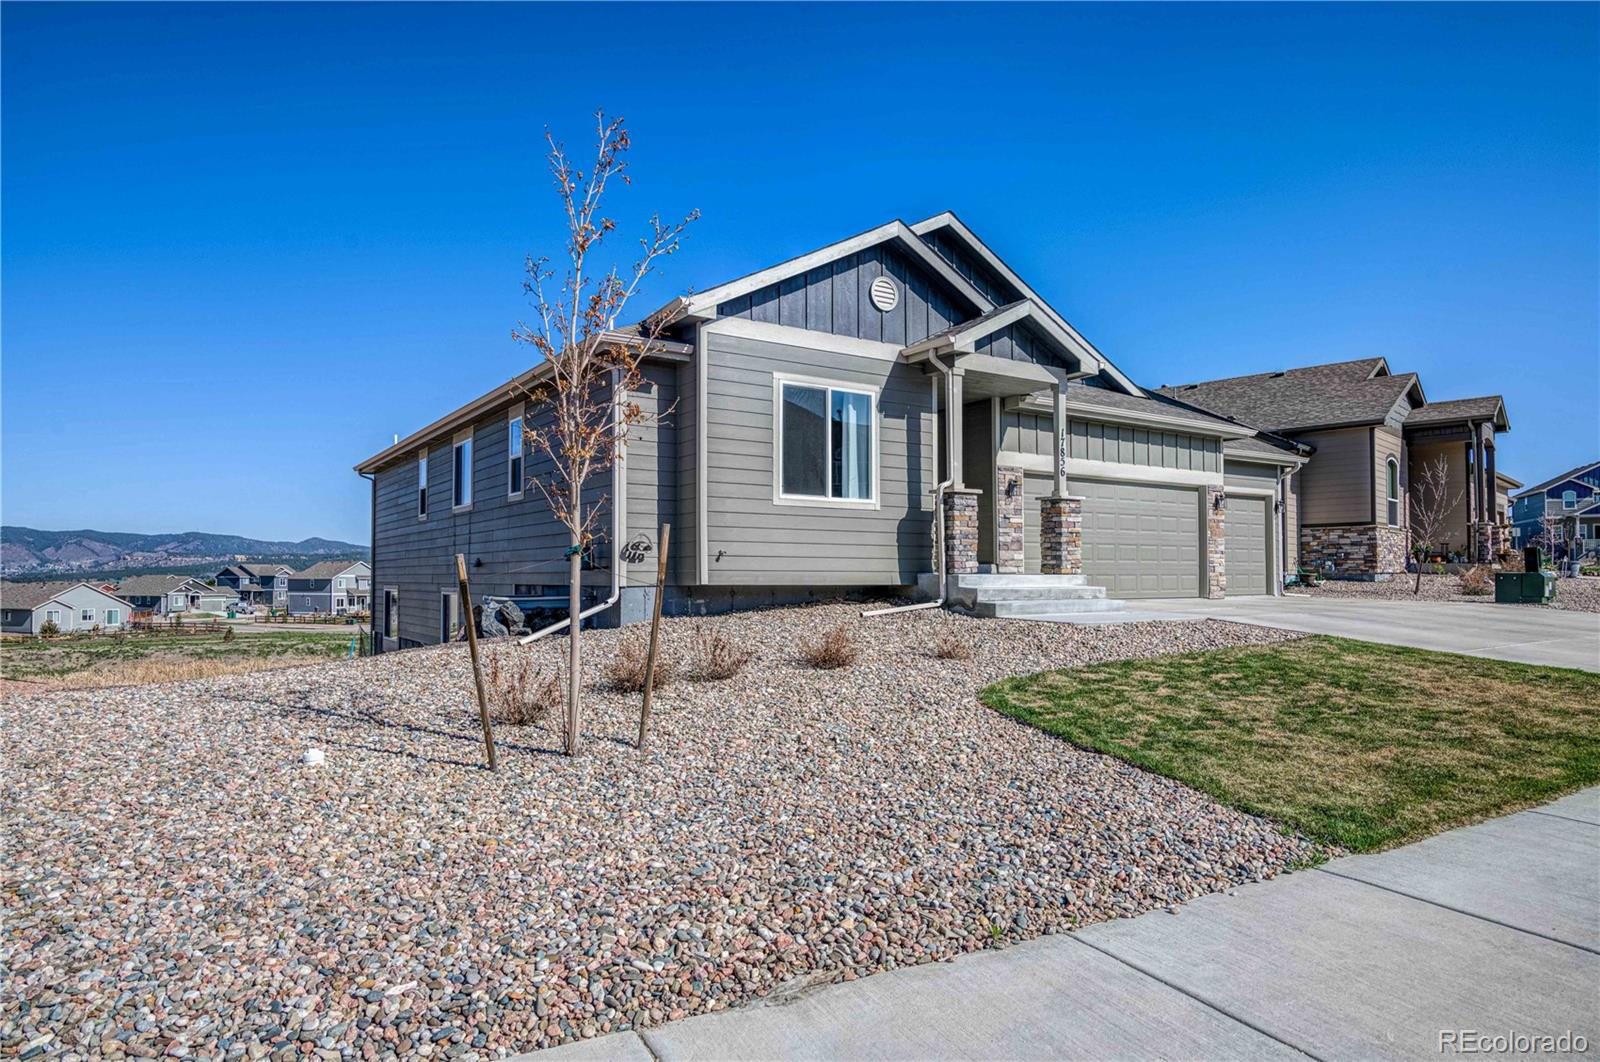 MLS# 5849980 - 2 - 17856 17856 Way, Monument, CO 80132